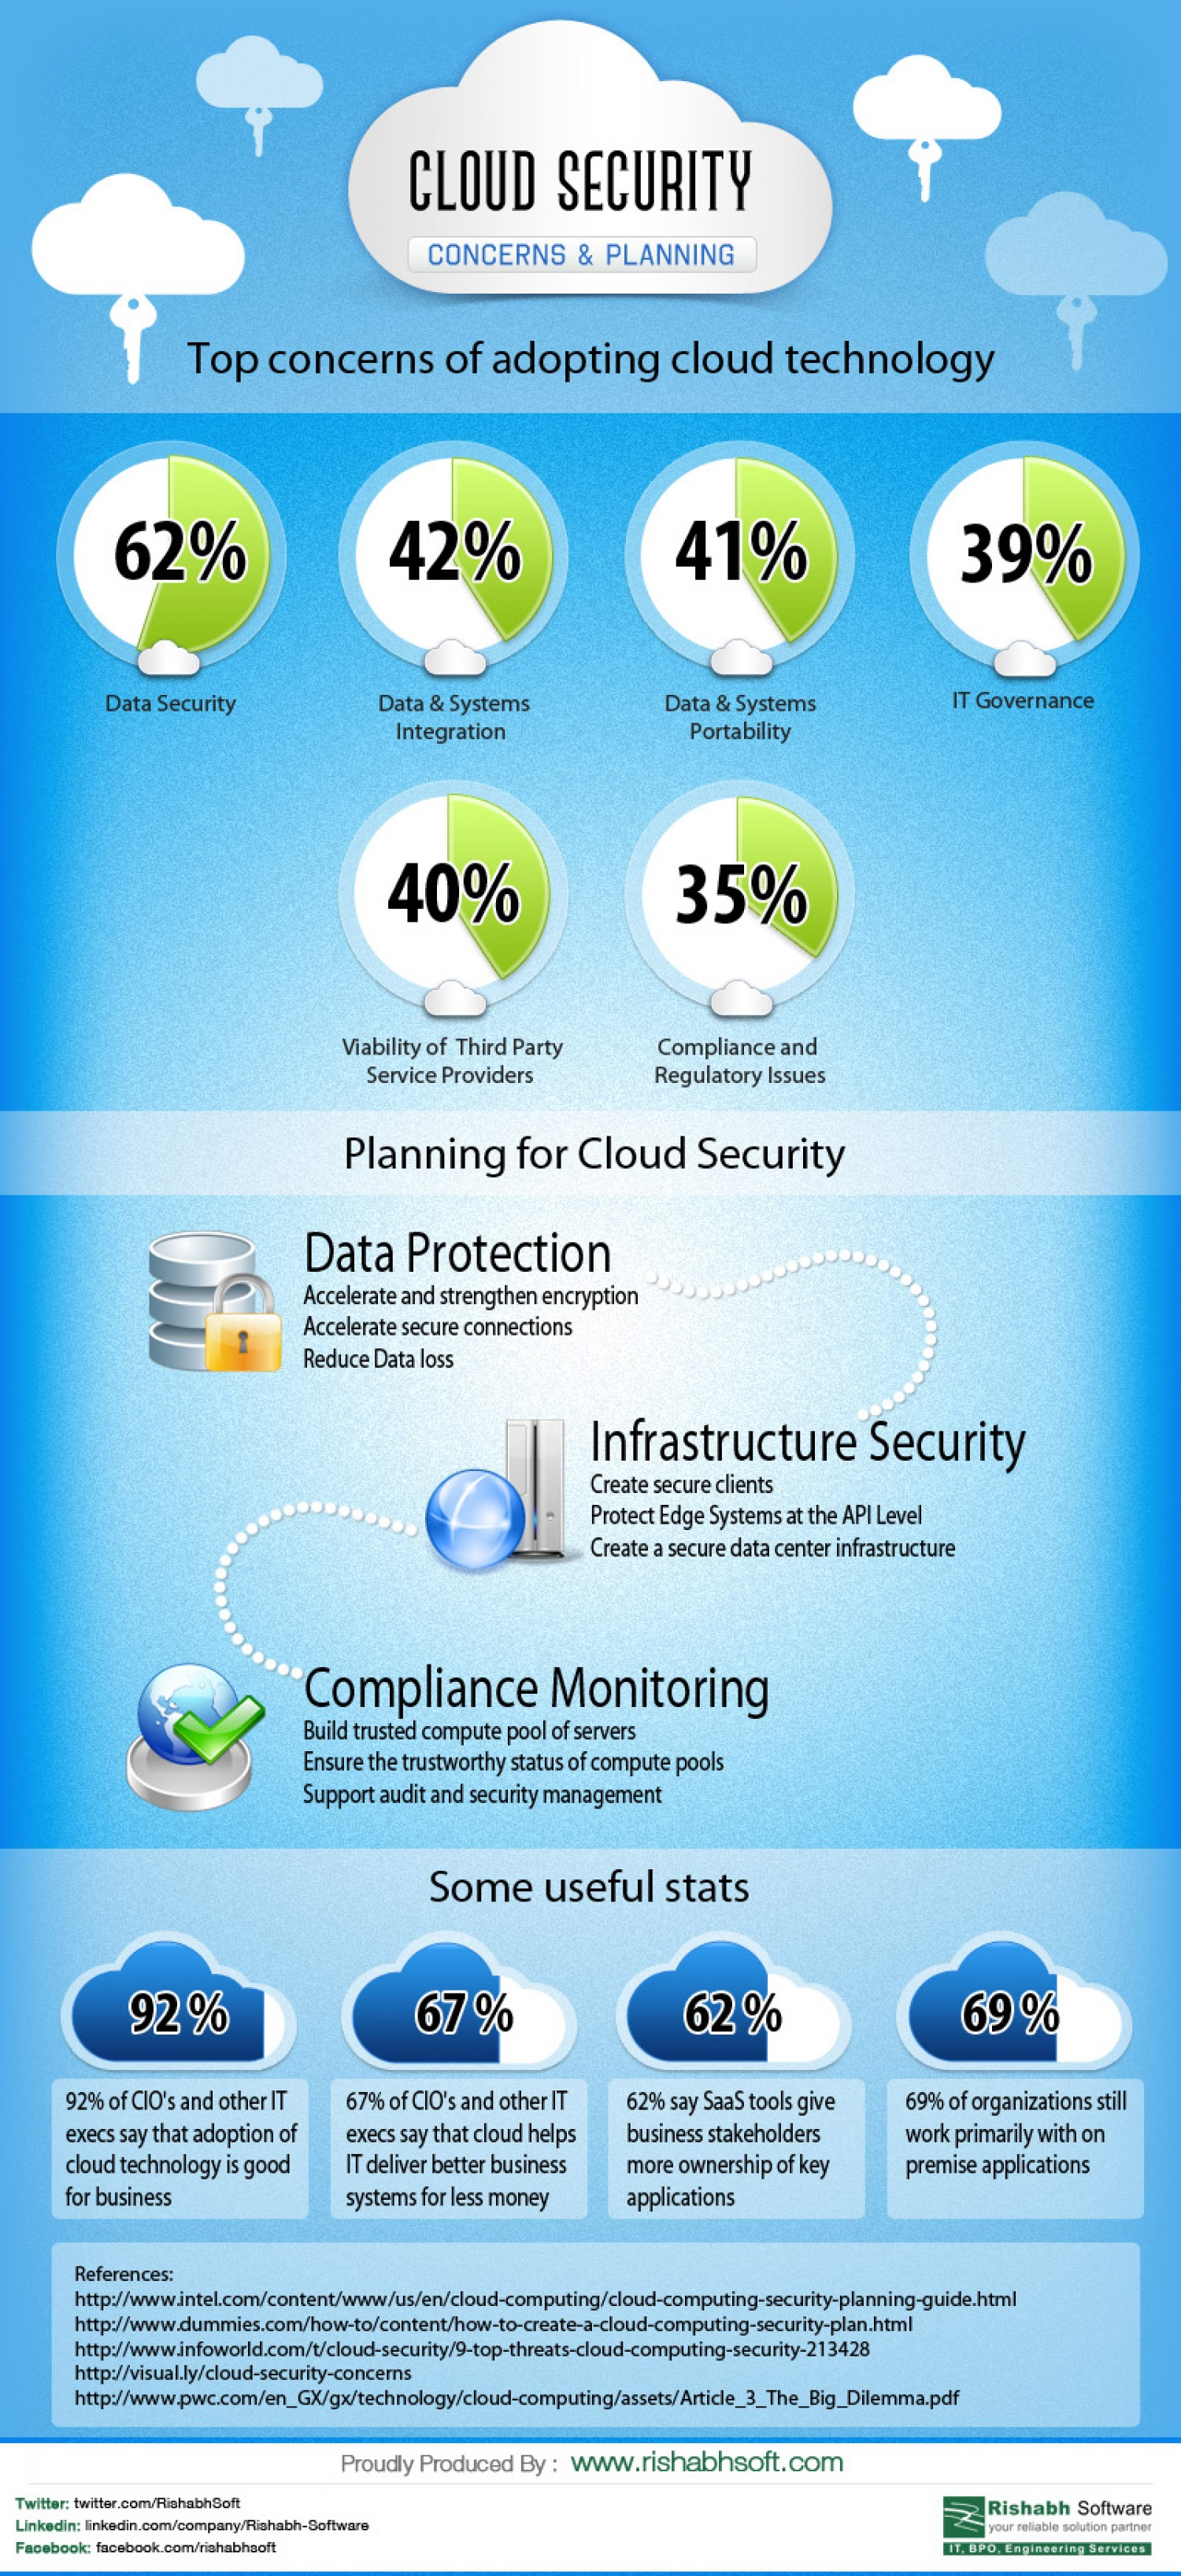 16. Cloud security- concerns & planning